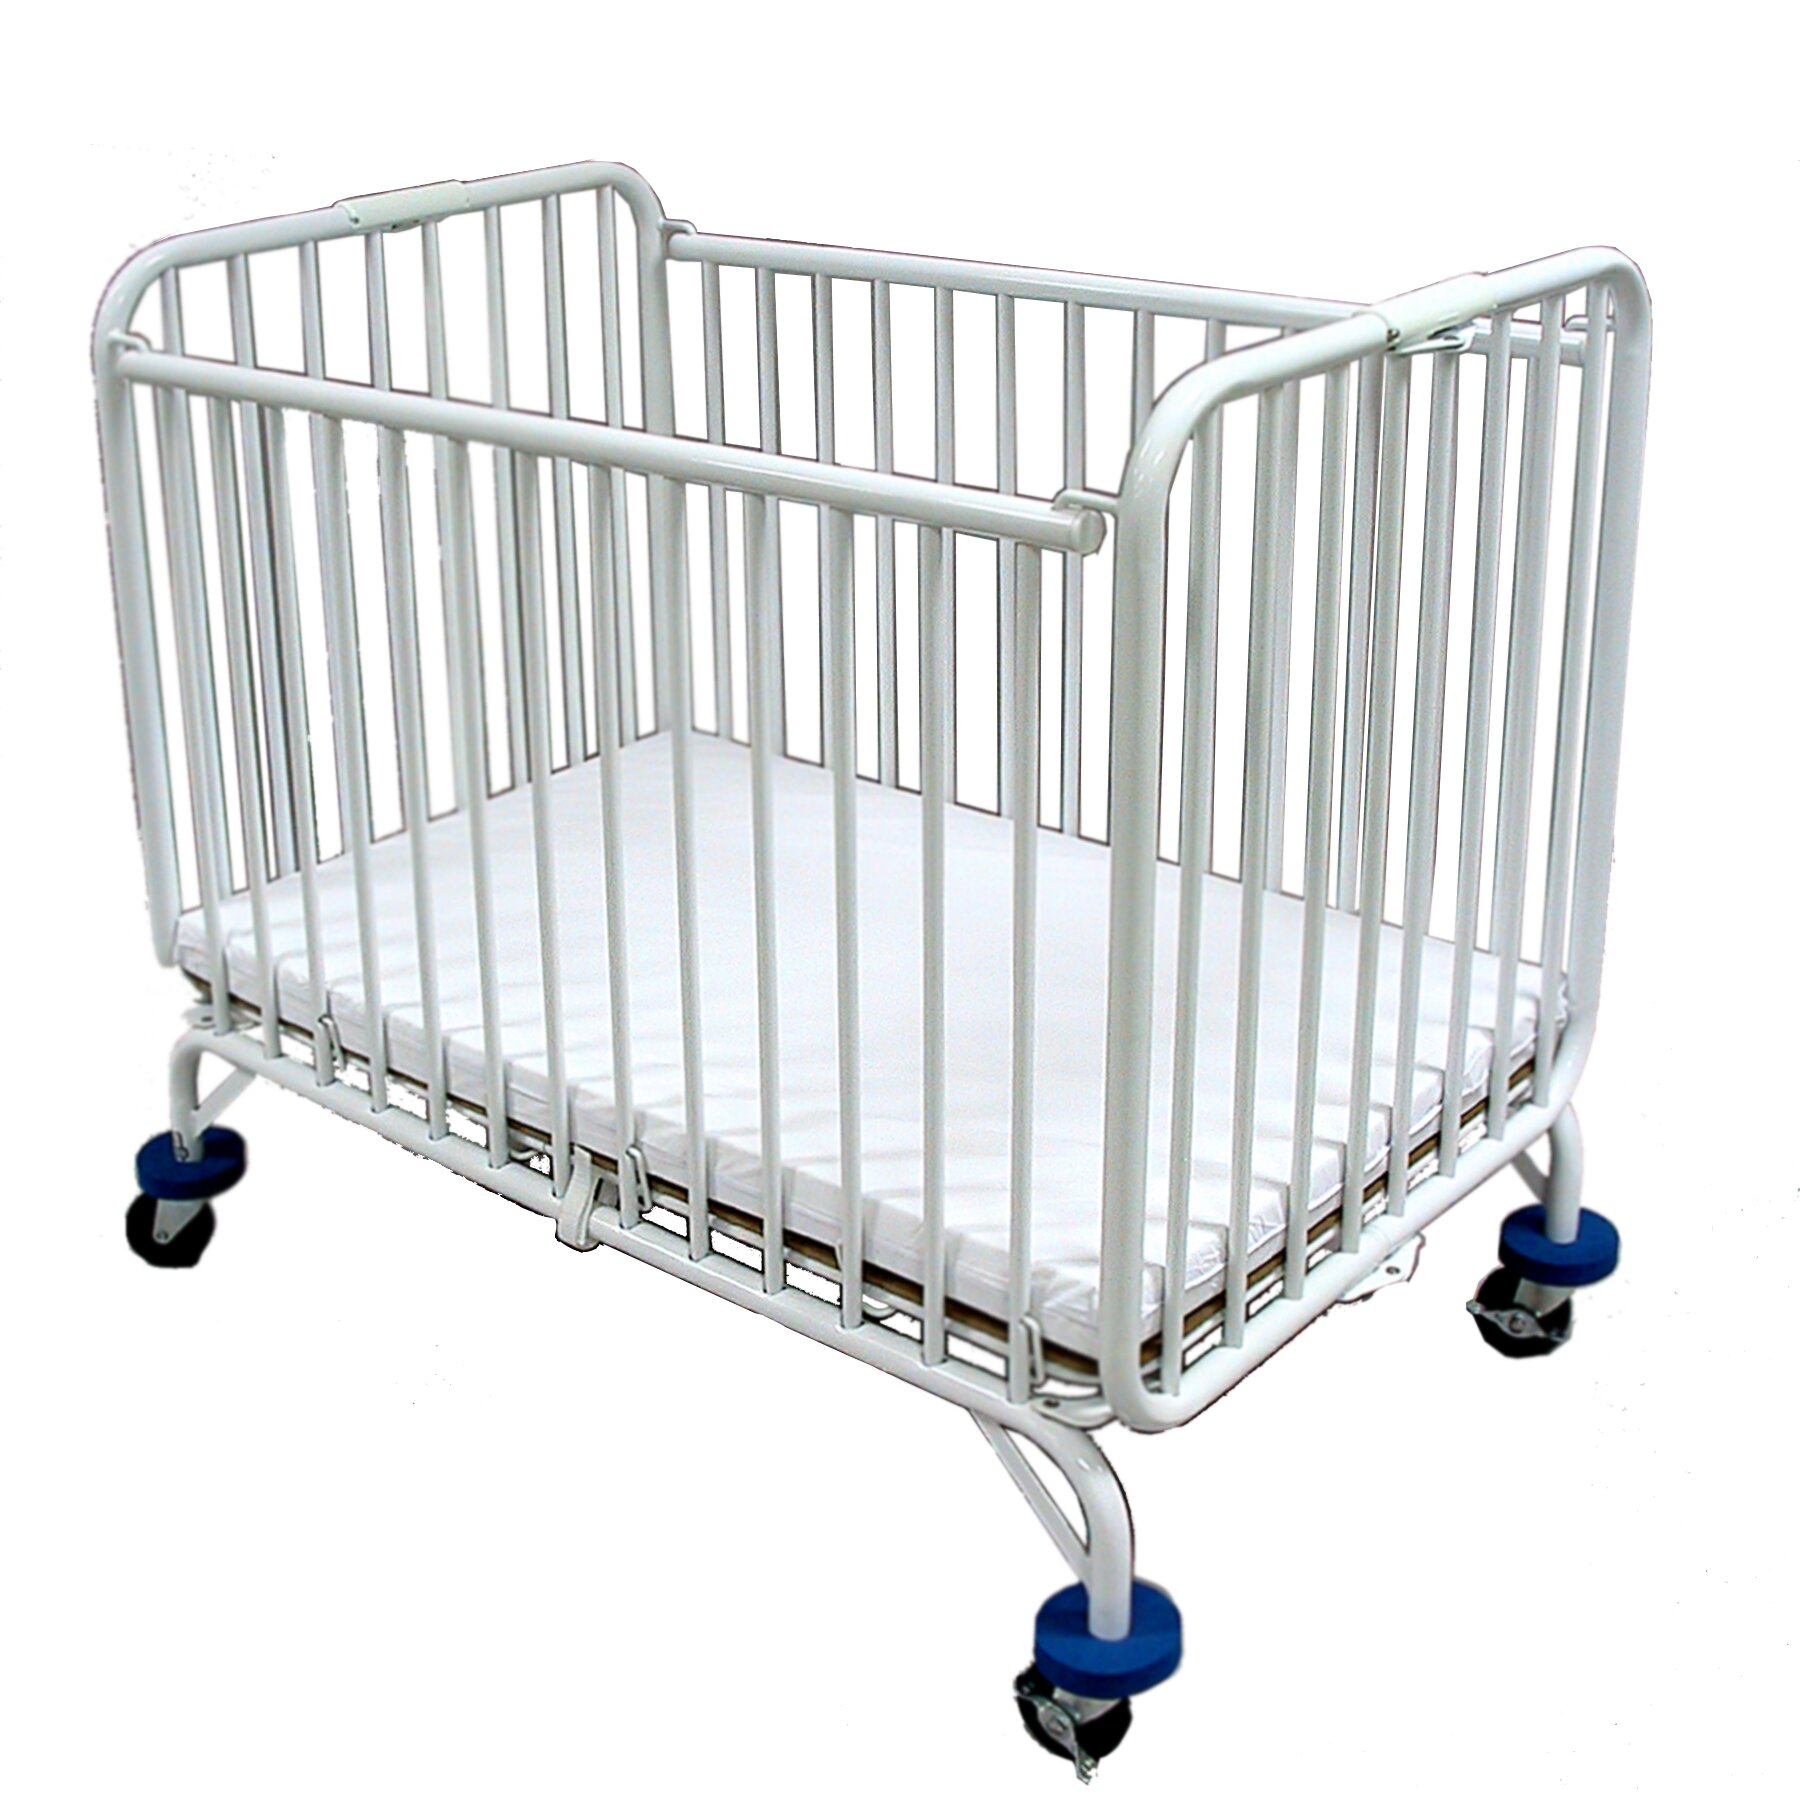 Evacuation crib for sale - L A Baby Baby Holiday Convertible Crib With Mattress